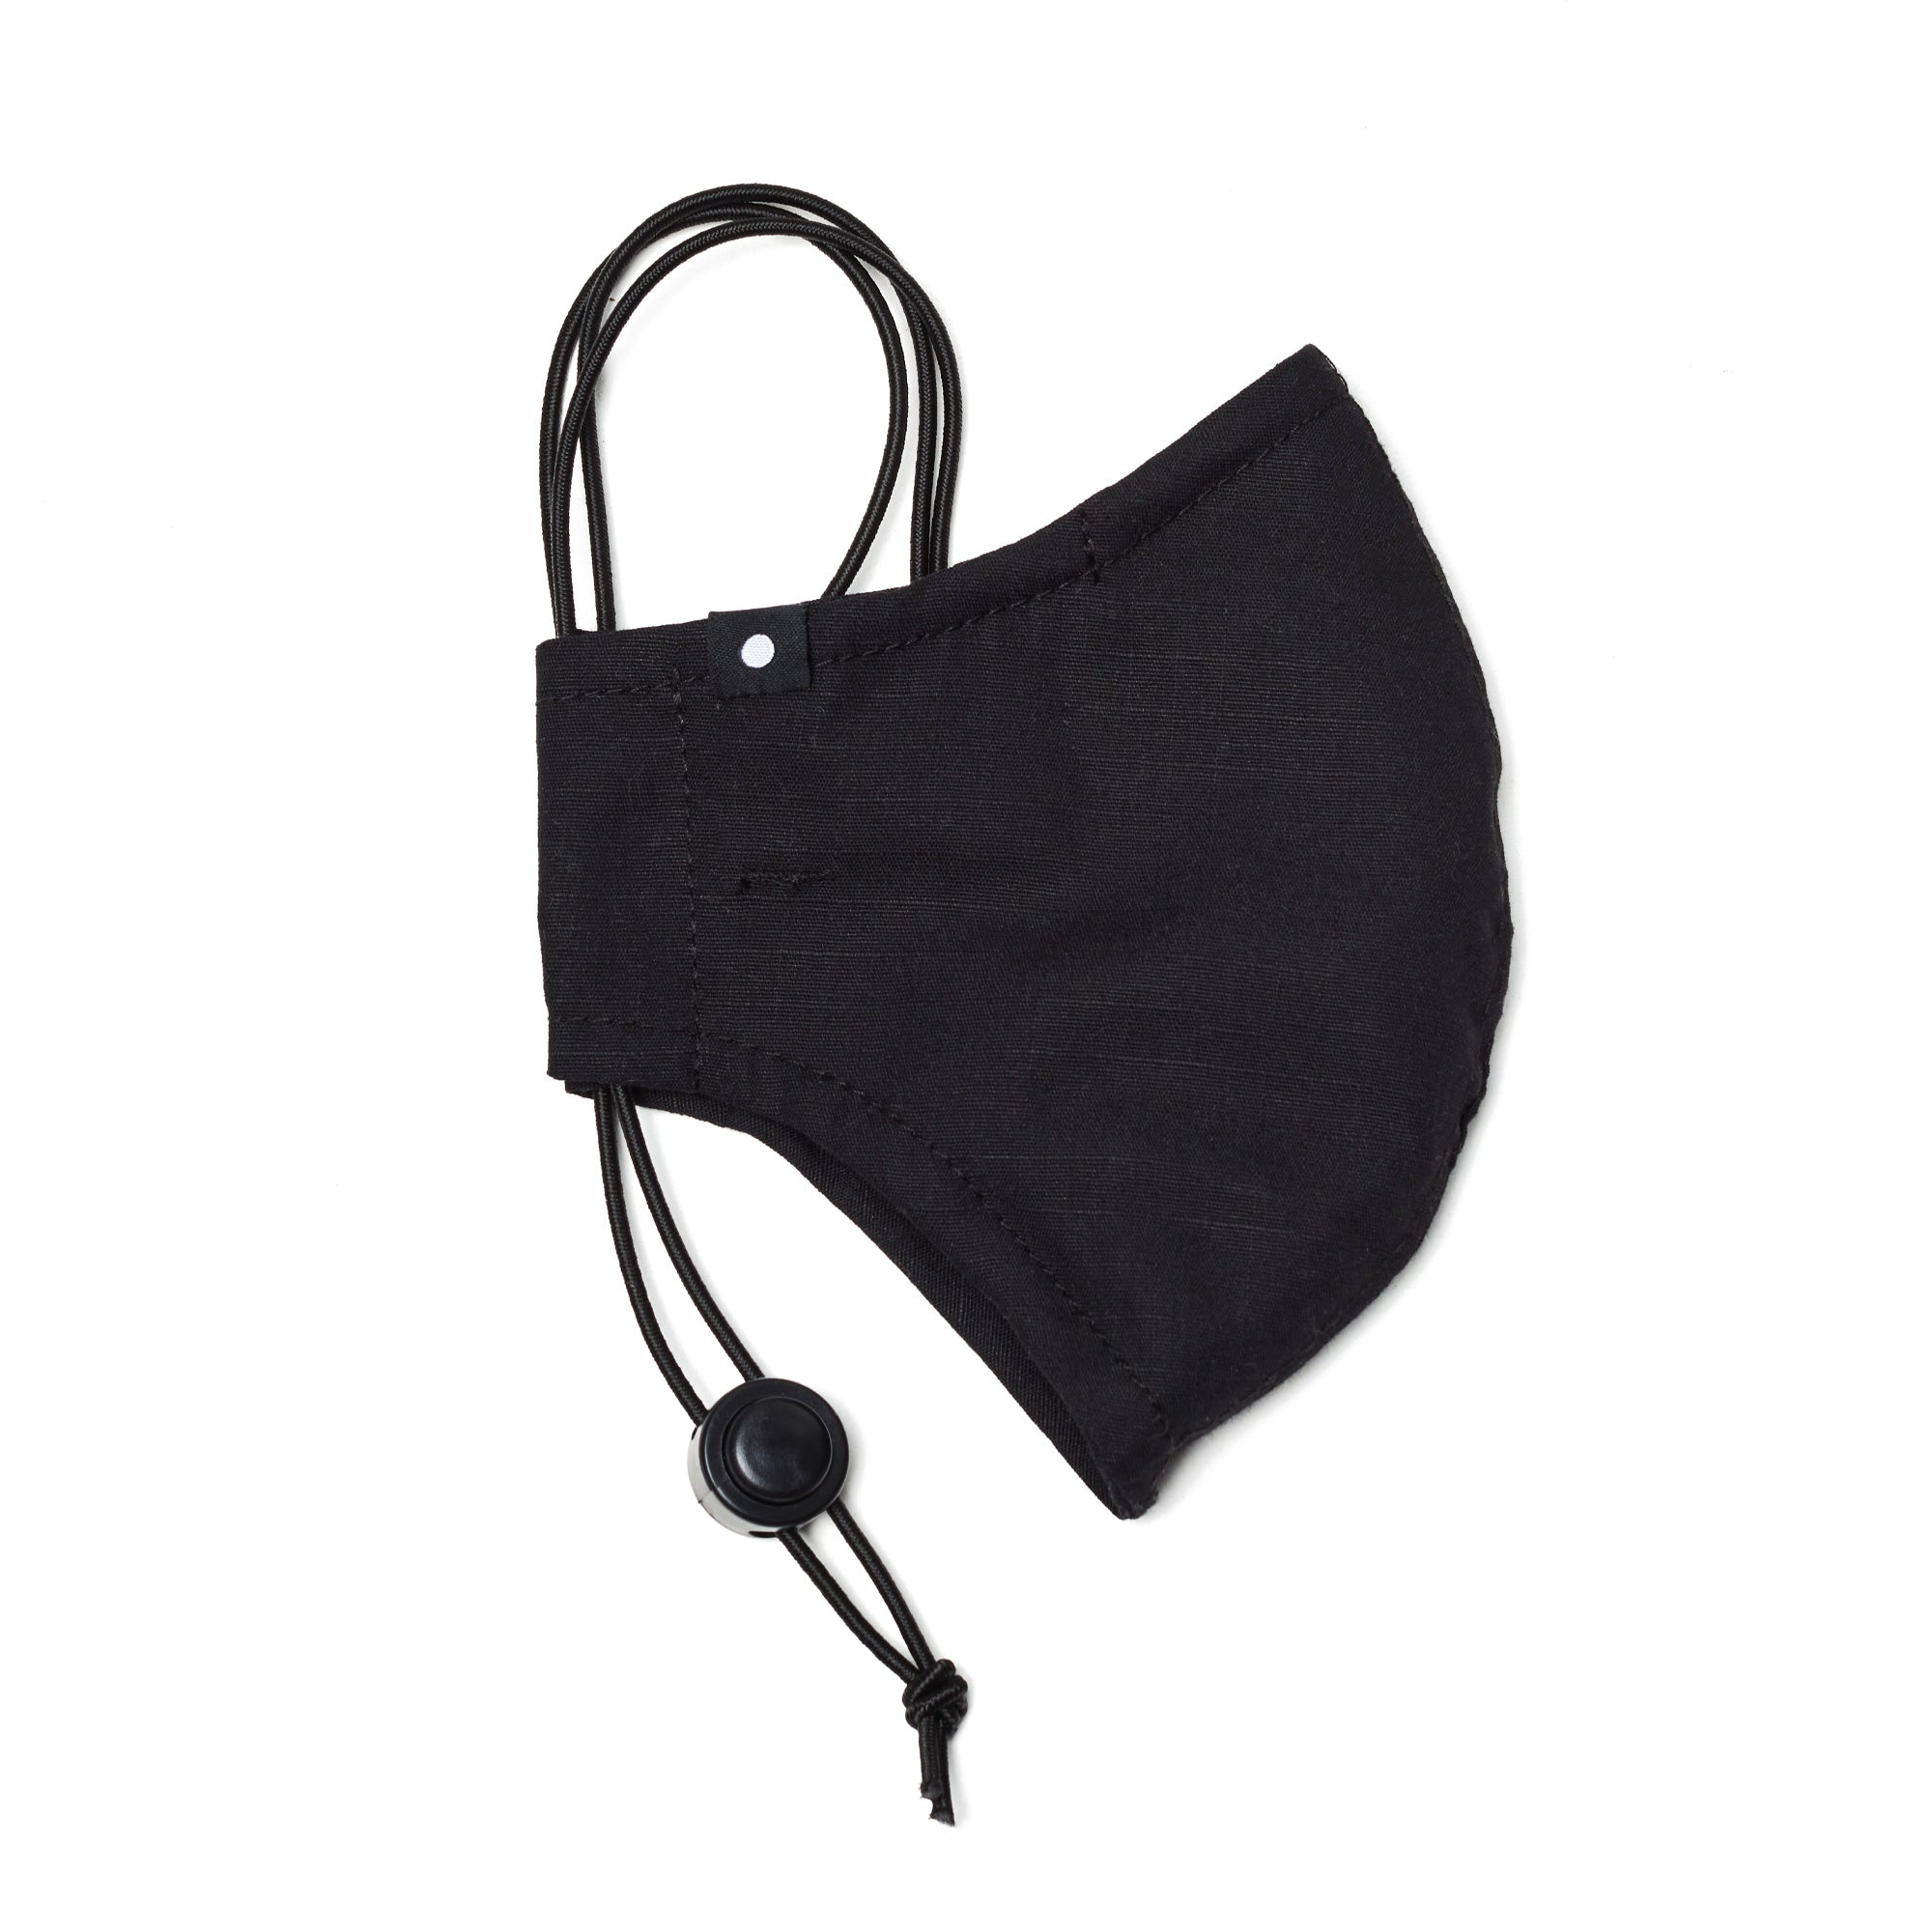 The Curve Mask - Black w/ Nose Wire and Adjuster